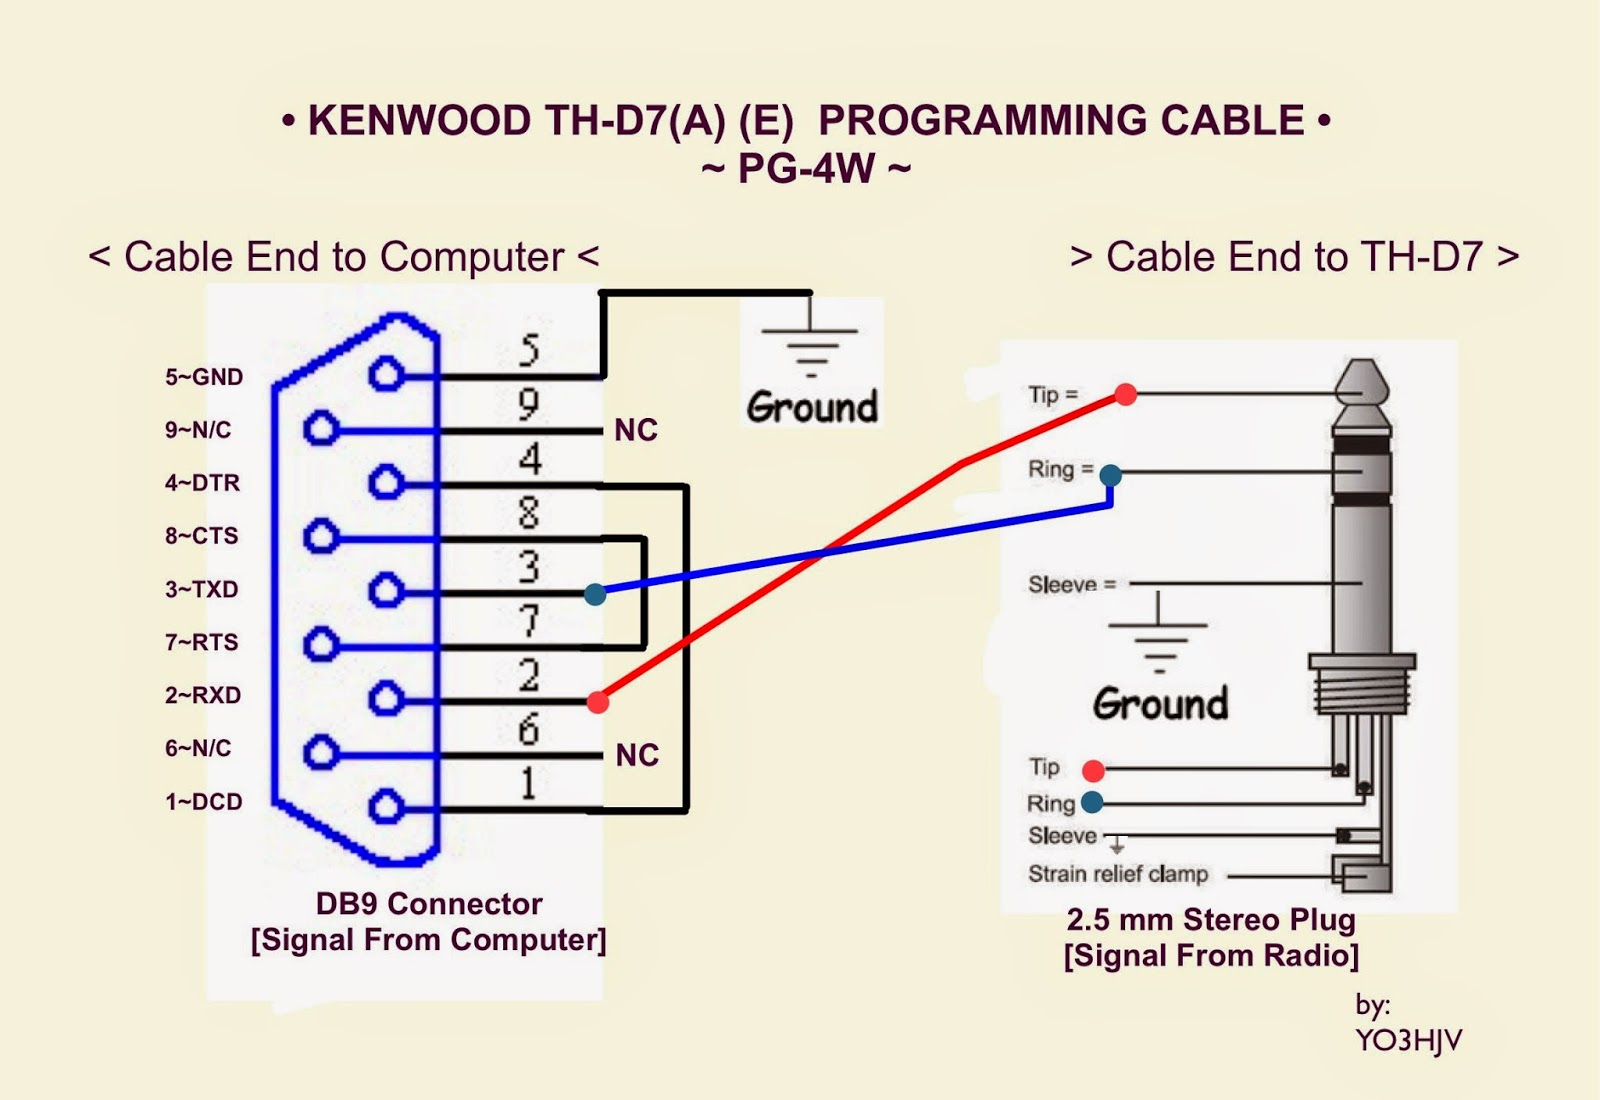 Yo3hjv Th D7 Pg 4w Programming Cable Diagram 7 Port Wiring